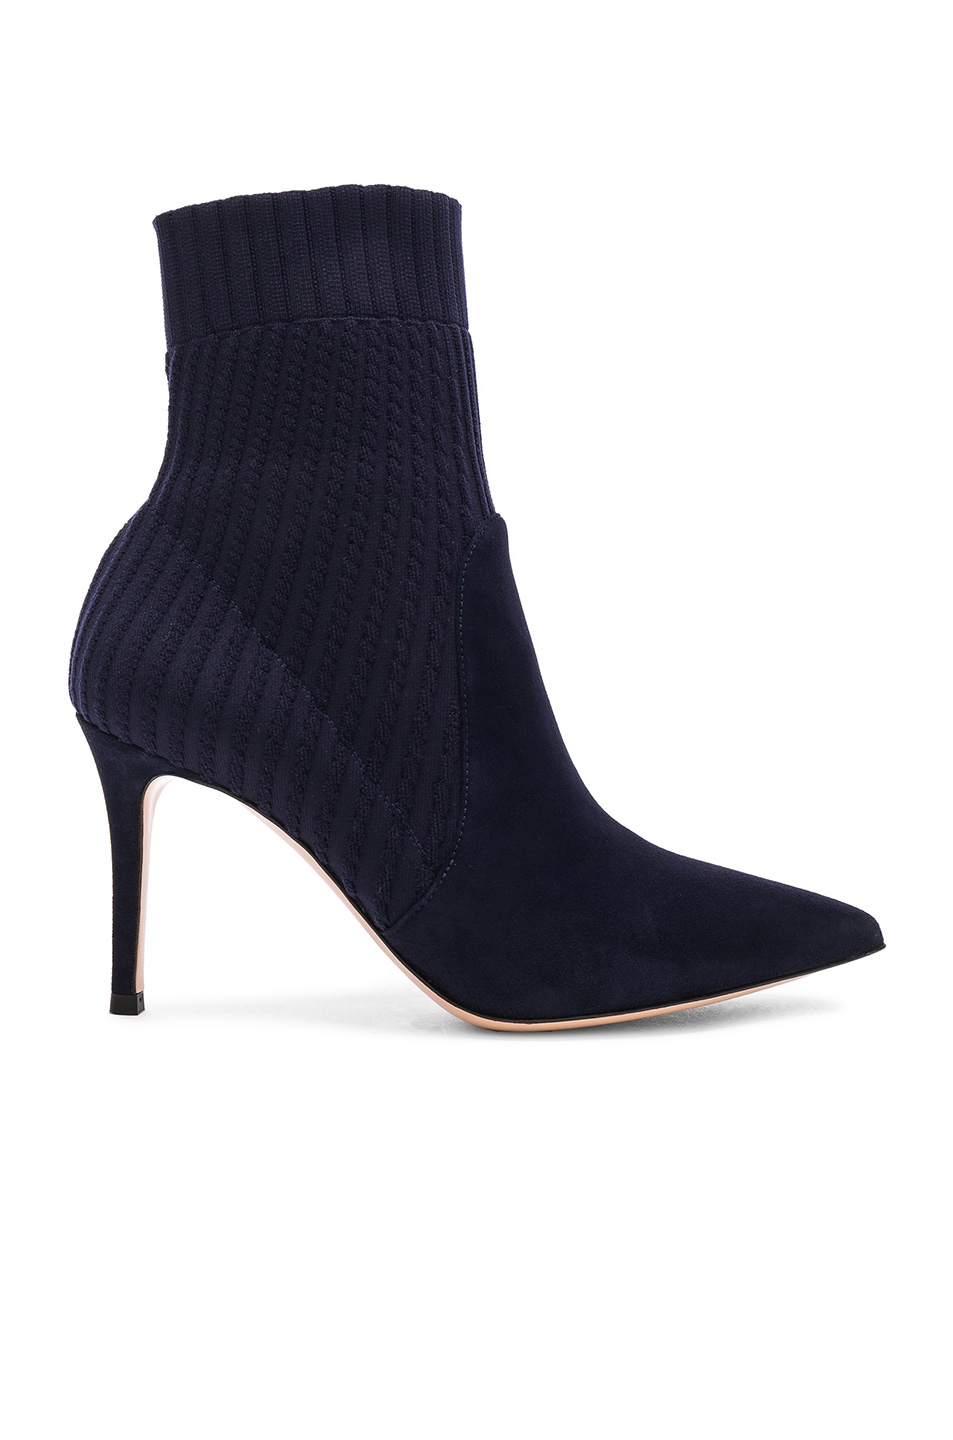 Image 1 of Gianvito Rossi Suede & Knit Katie Ankle Boots in Denim